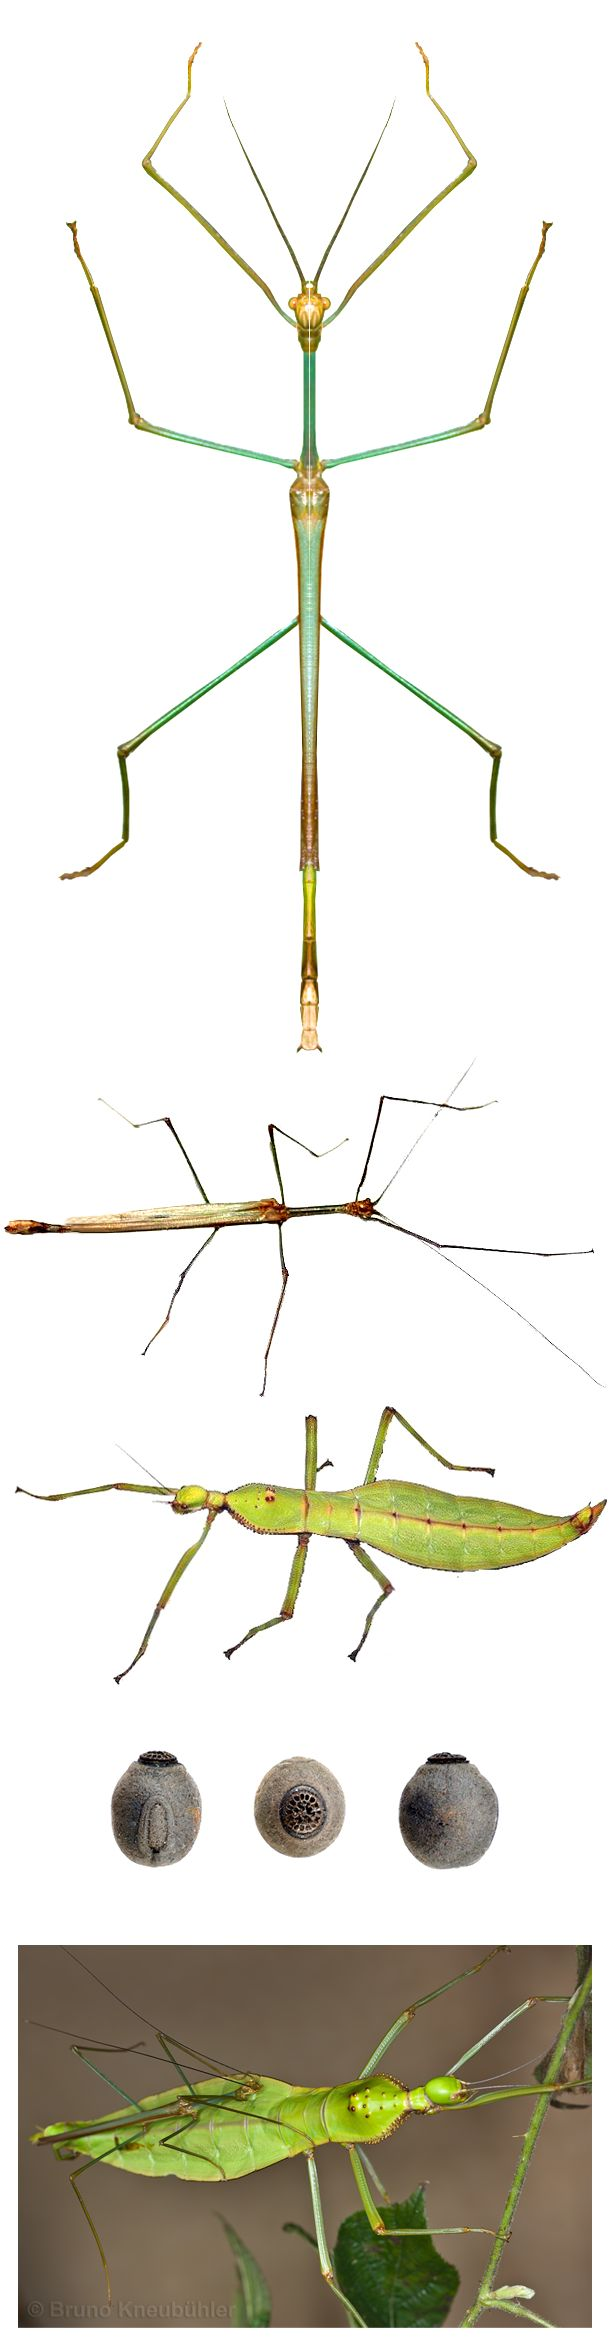 Stick Bug Anatomy Diagram - Search For Wiring Diagrams •